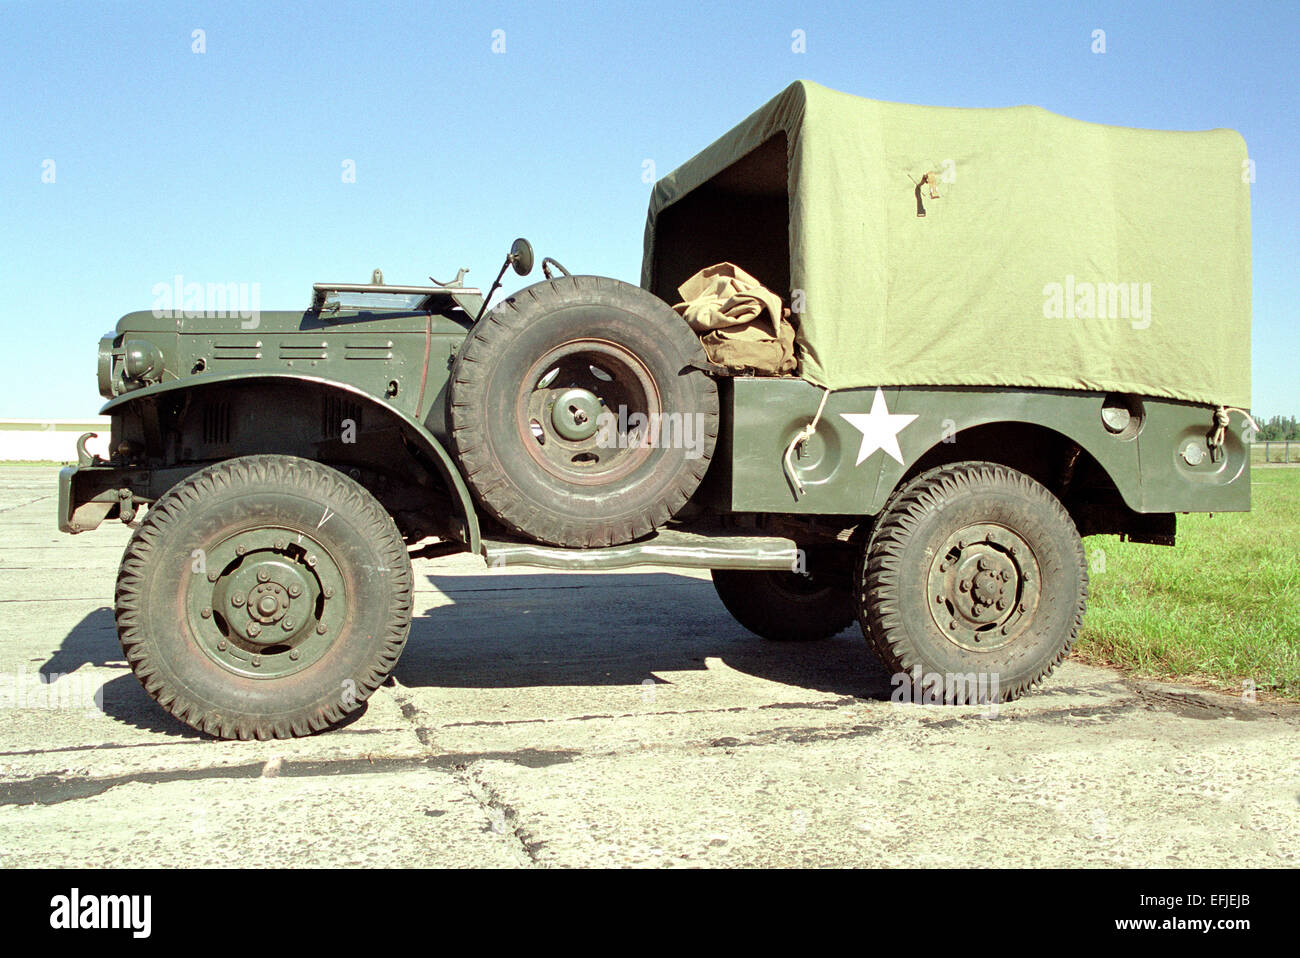 Dodge WC-series on display military - Stock Image